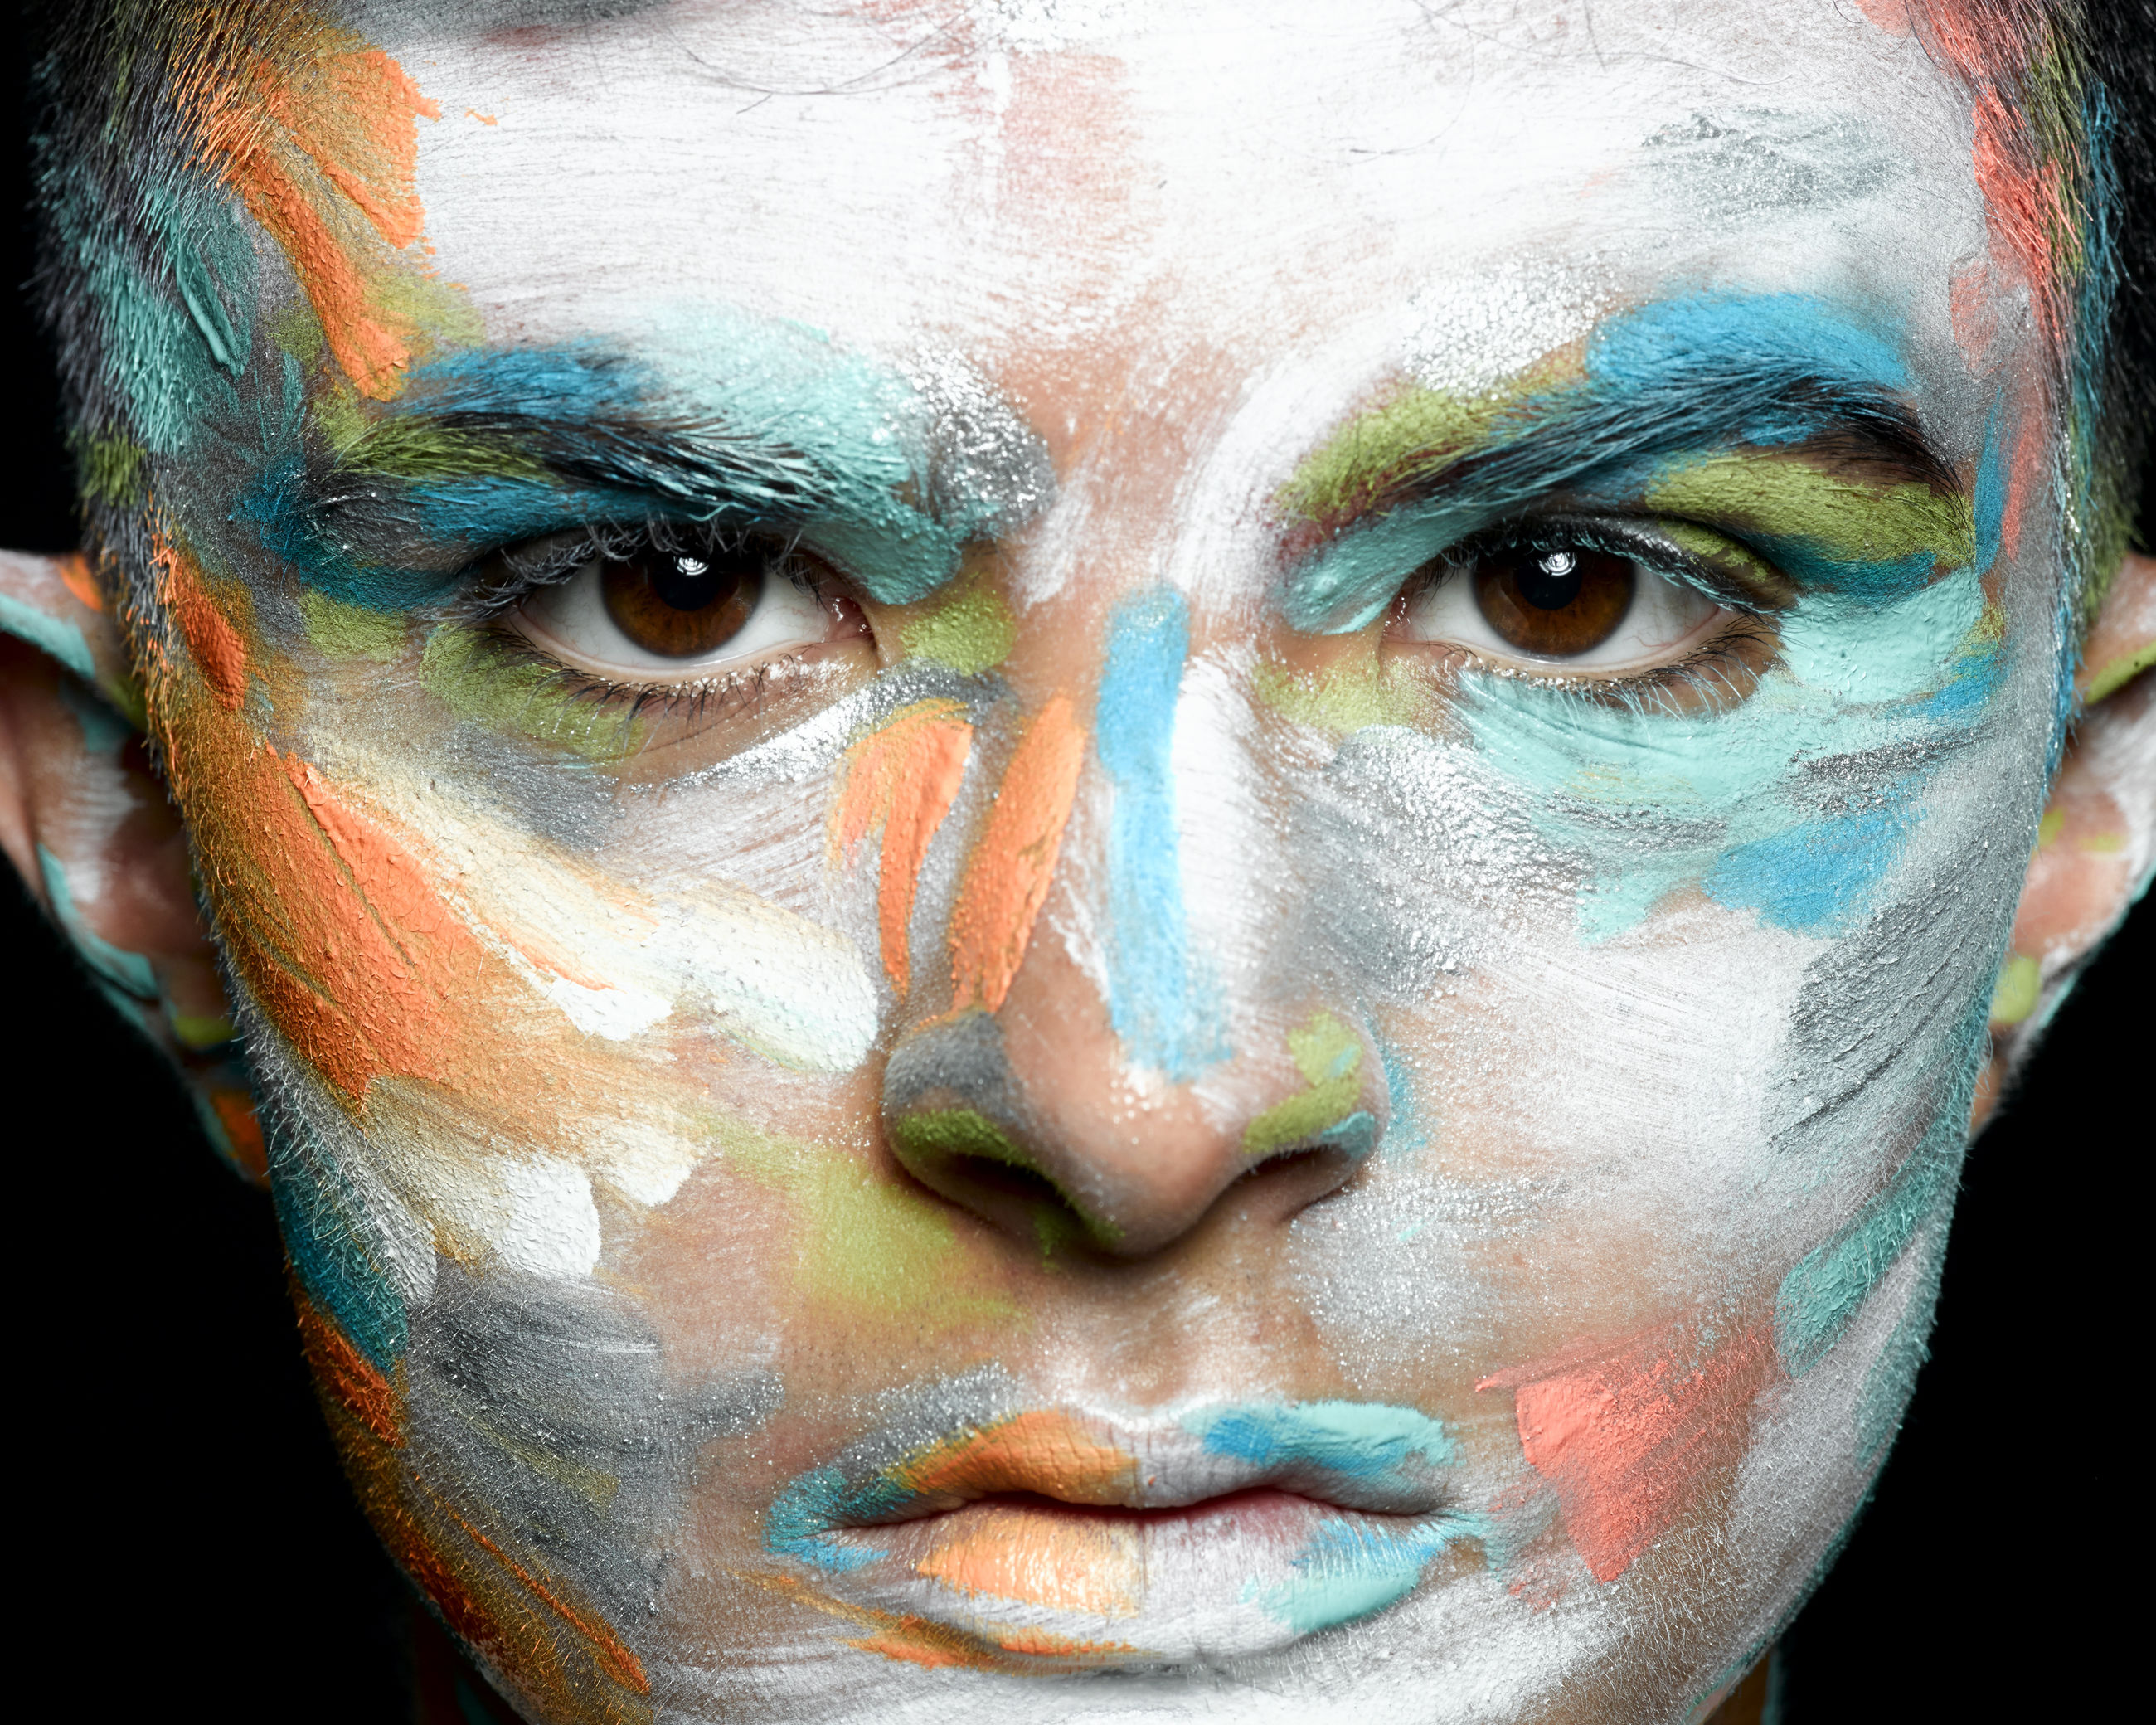 portrait, close-up, paint, human face, multi colored, one person, face paint, body part, human body part, art and craft, looking at camera, men, headshot, creativity, studio shot, front view, serious, males, adult, black background